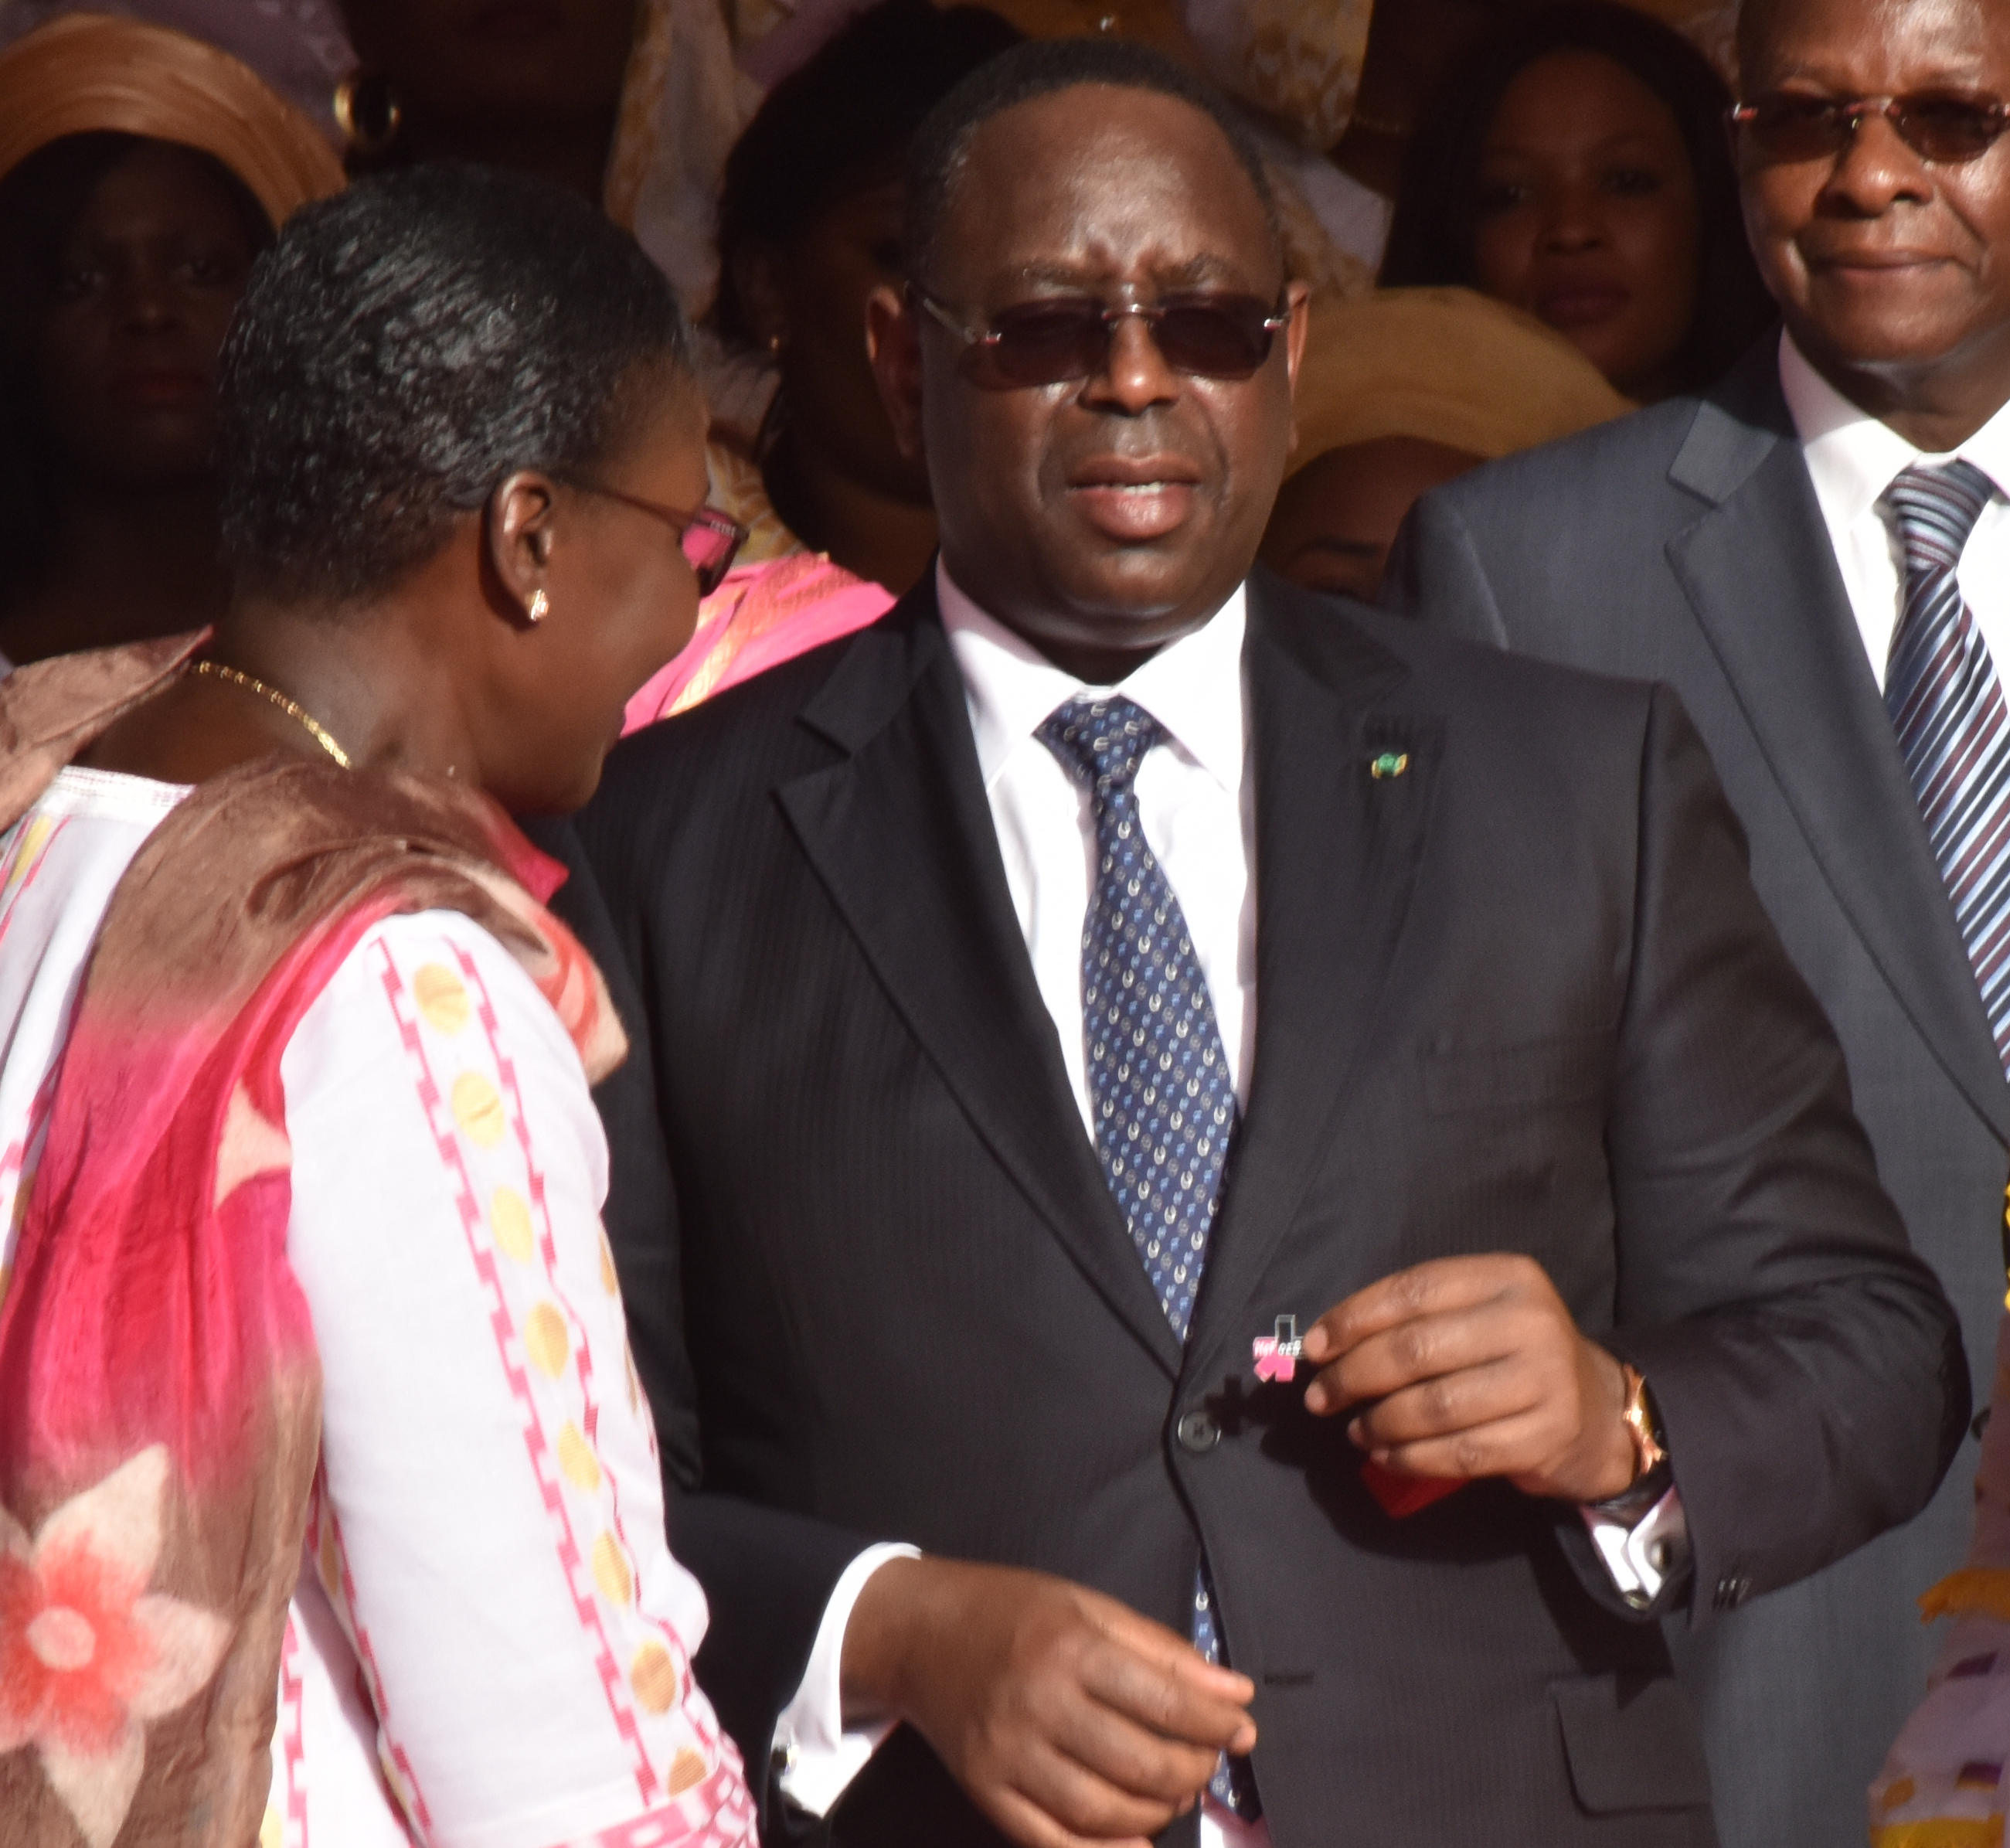 President of the Republic of Senegal, HE Mr. Macky Sall receiving the He For She pin